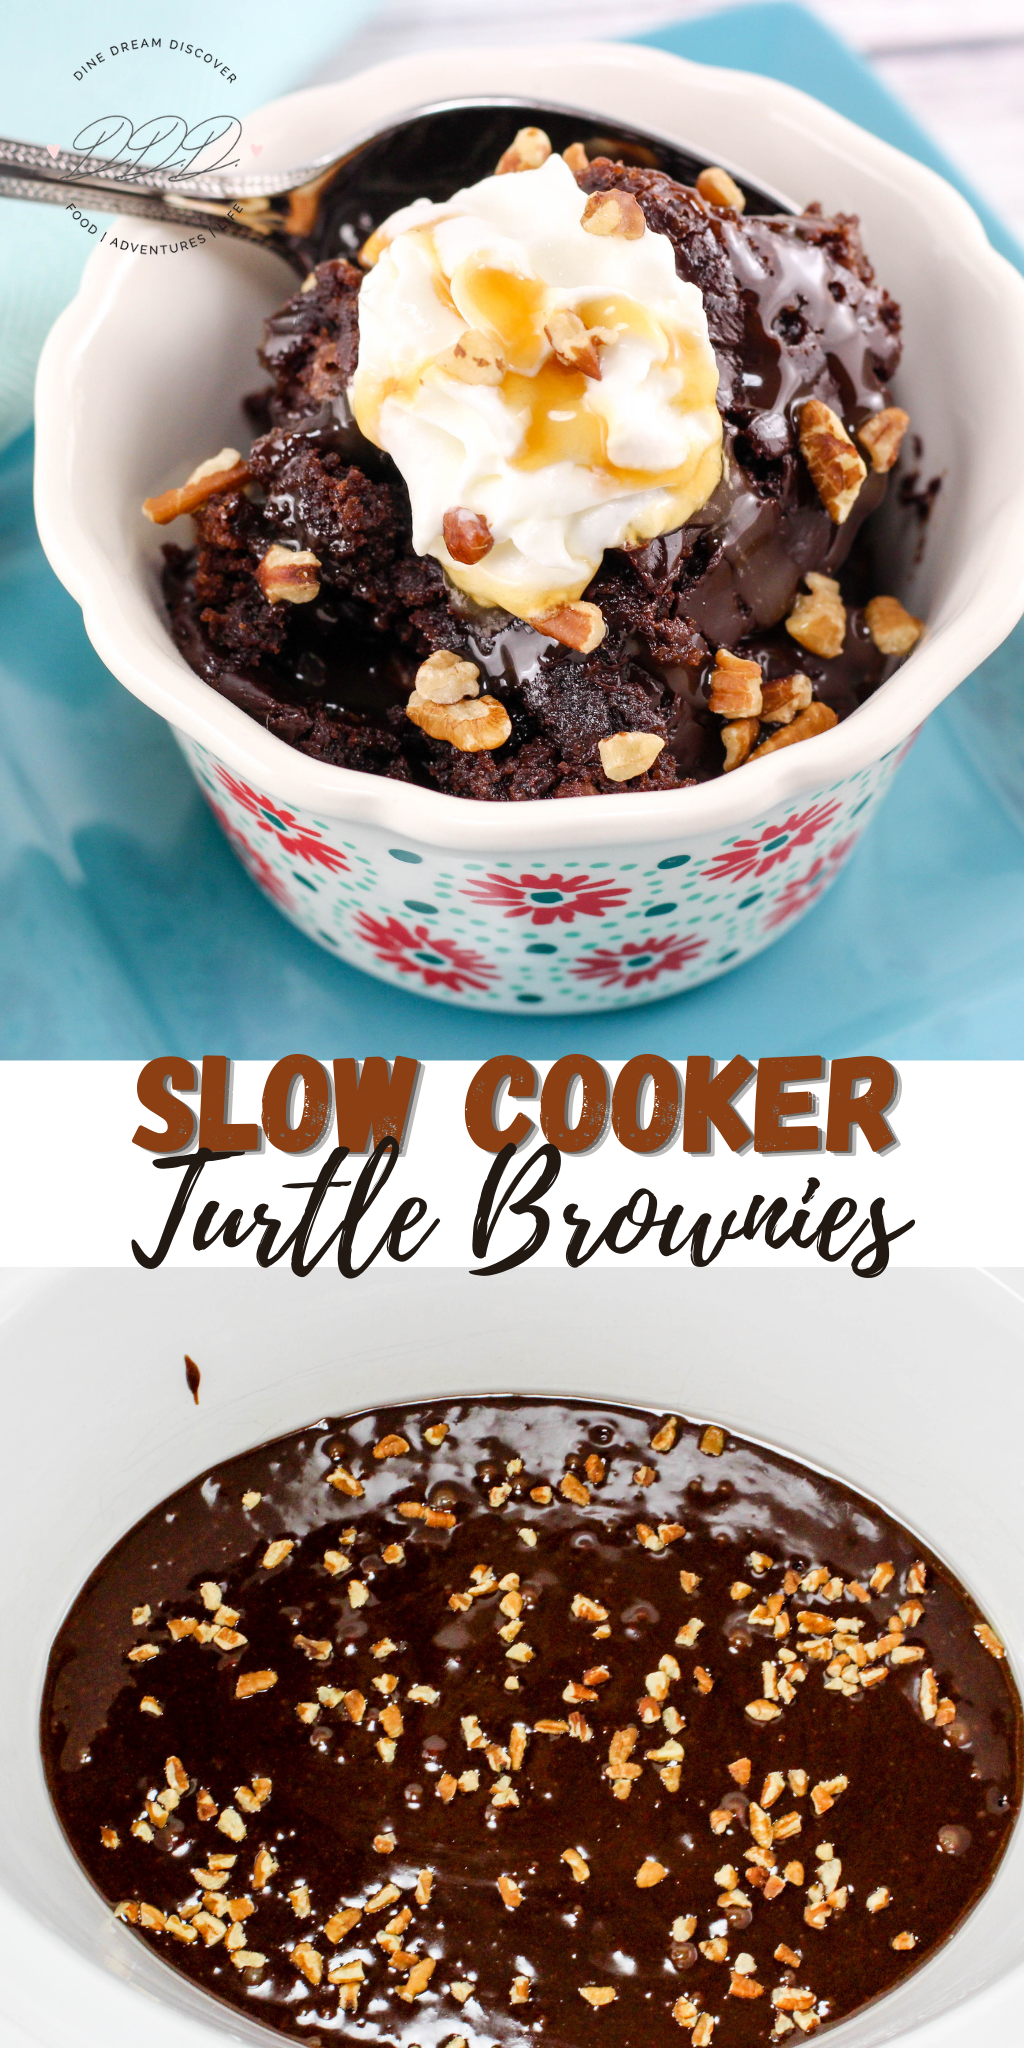 Slow Cooker Turtle Brownies Recipe